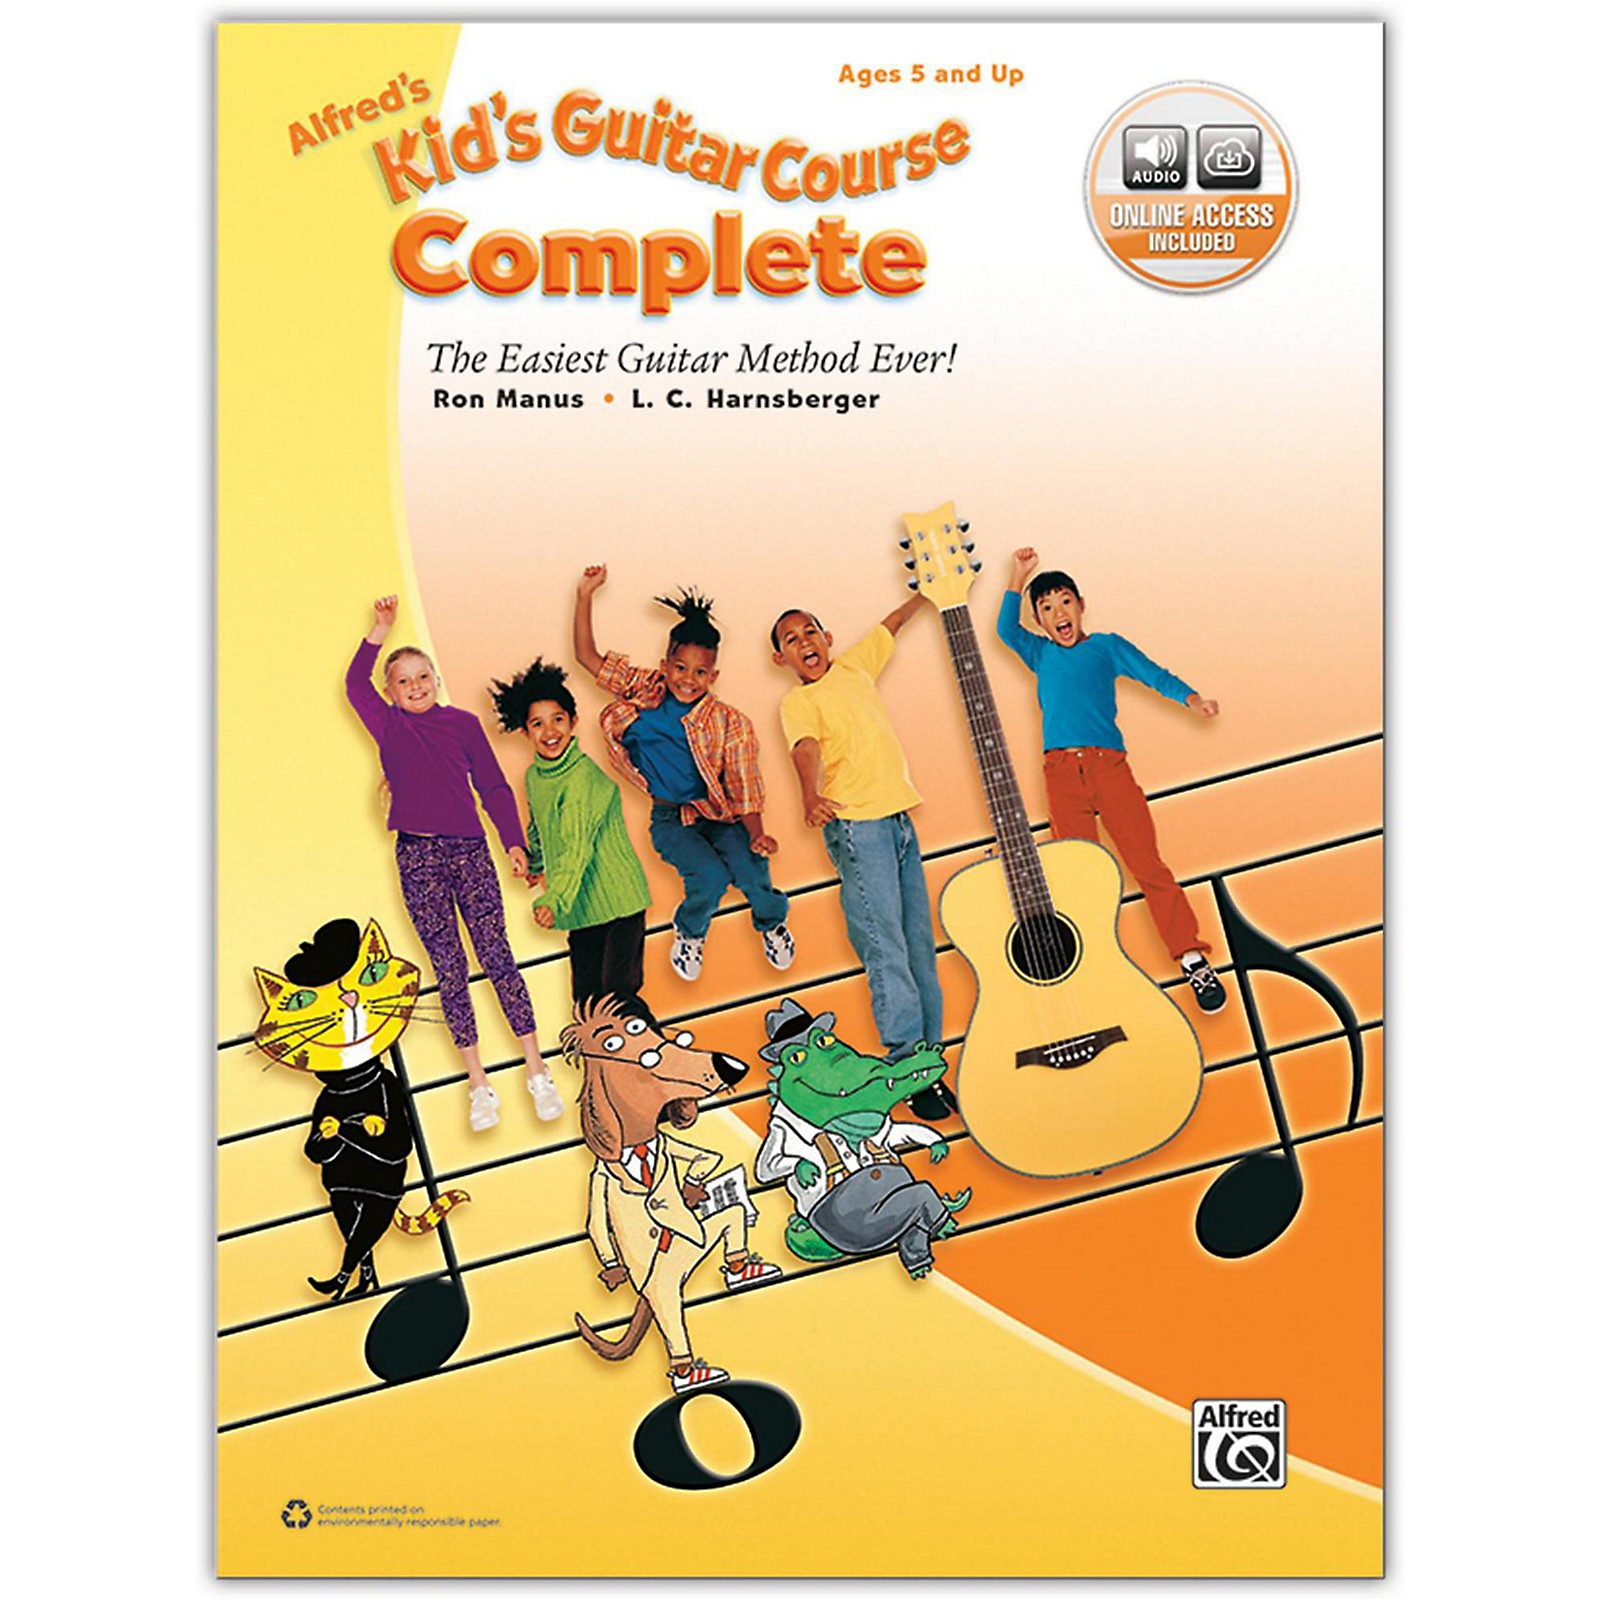 Alfred Alfred's Kid's Guitar Course Complete Book & Online Audio